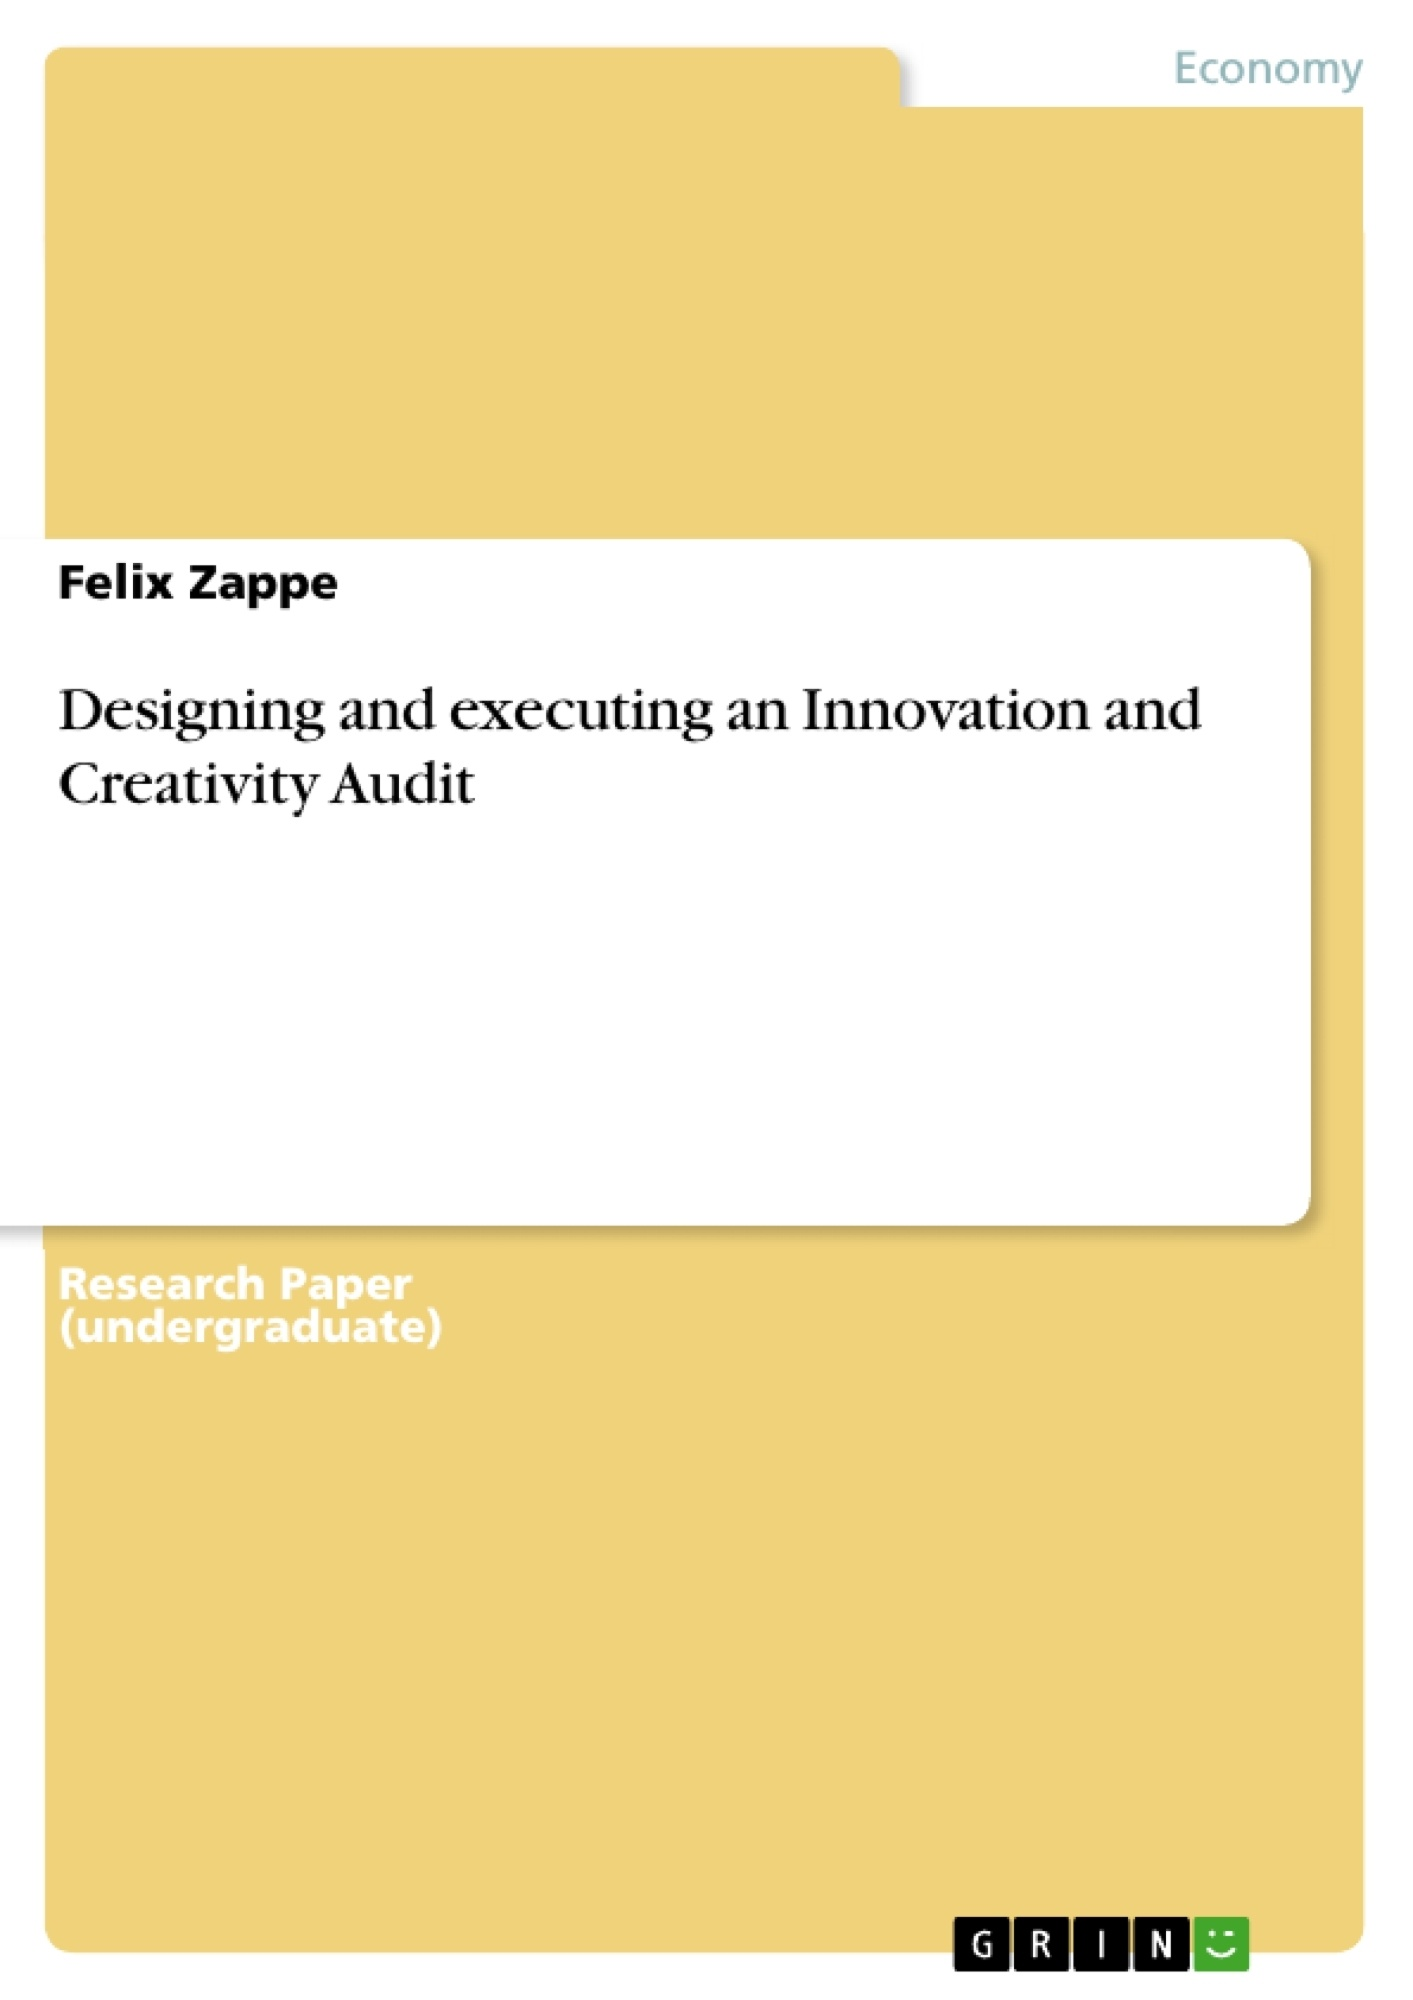 Title: Designing and executing an Innovation and Creativity Audit